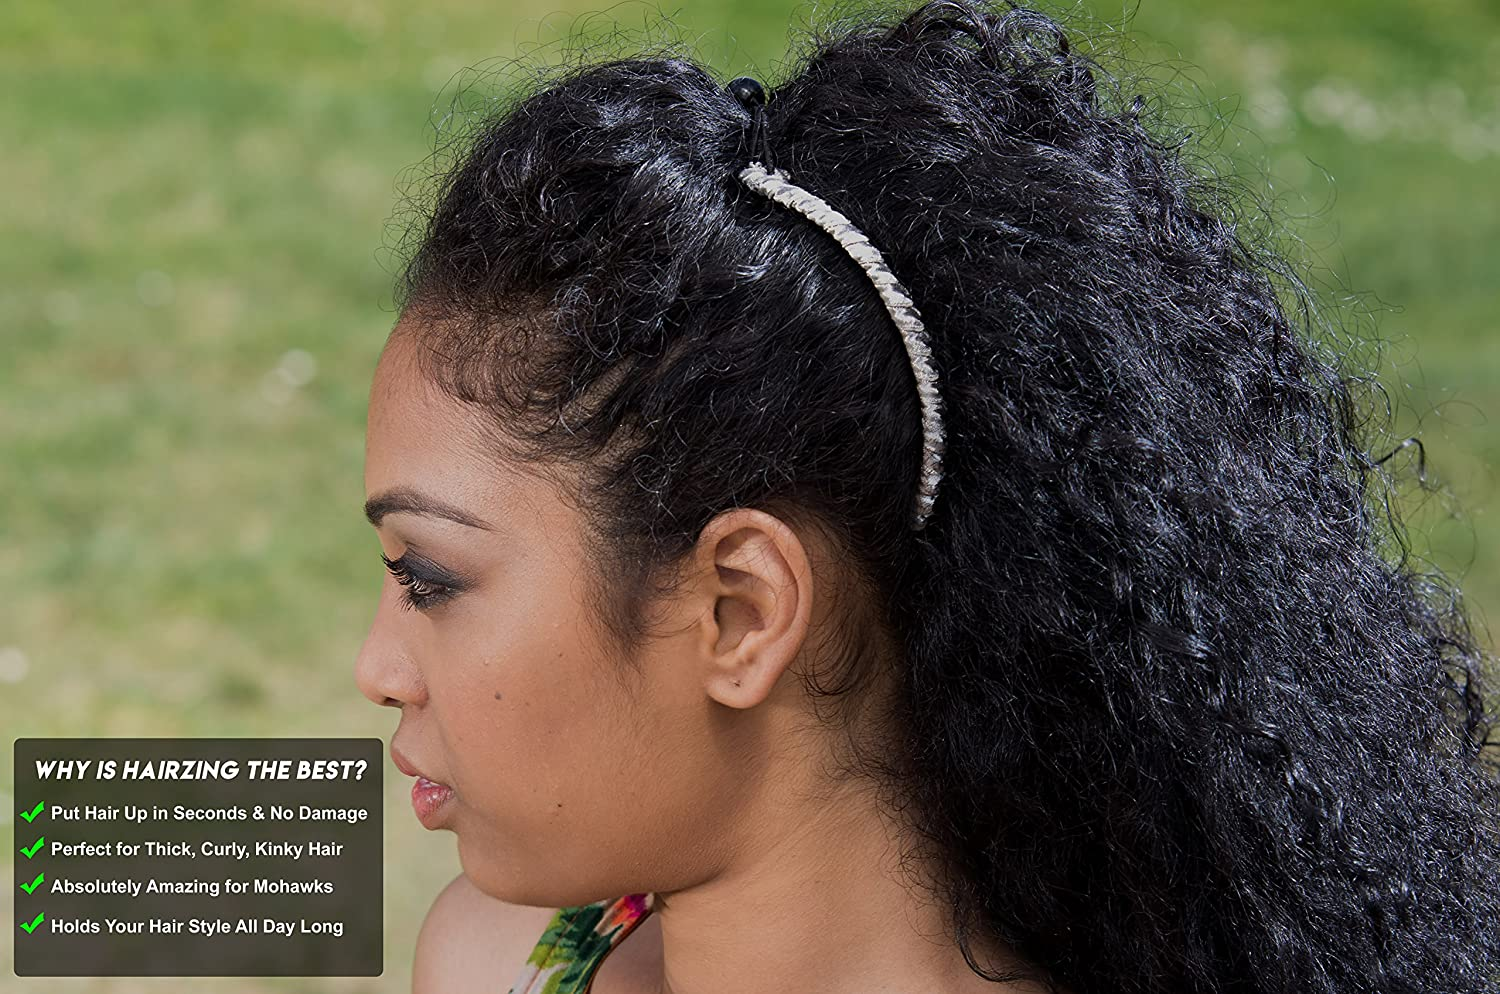 Banana Clip for Thick, Curly, Kinky Hair - Put Your Hair Up in Seconds with  No Damage, Creases, or Pain -